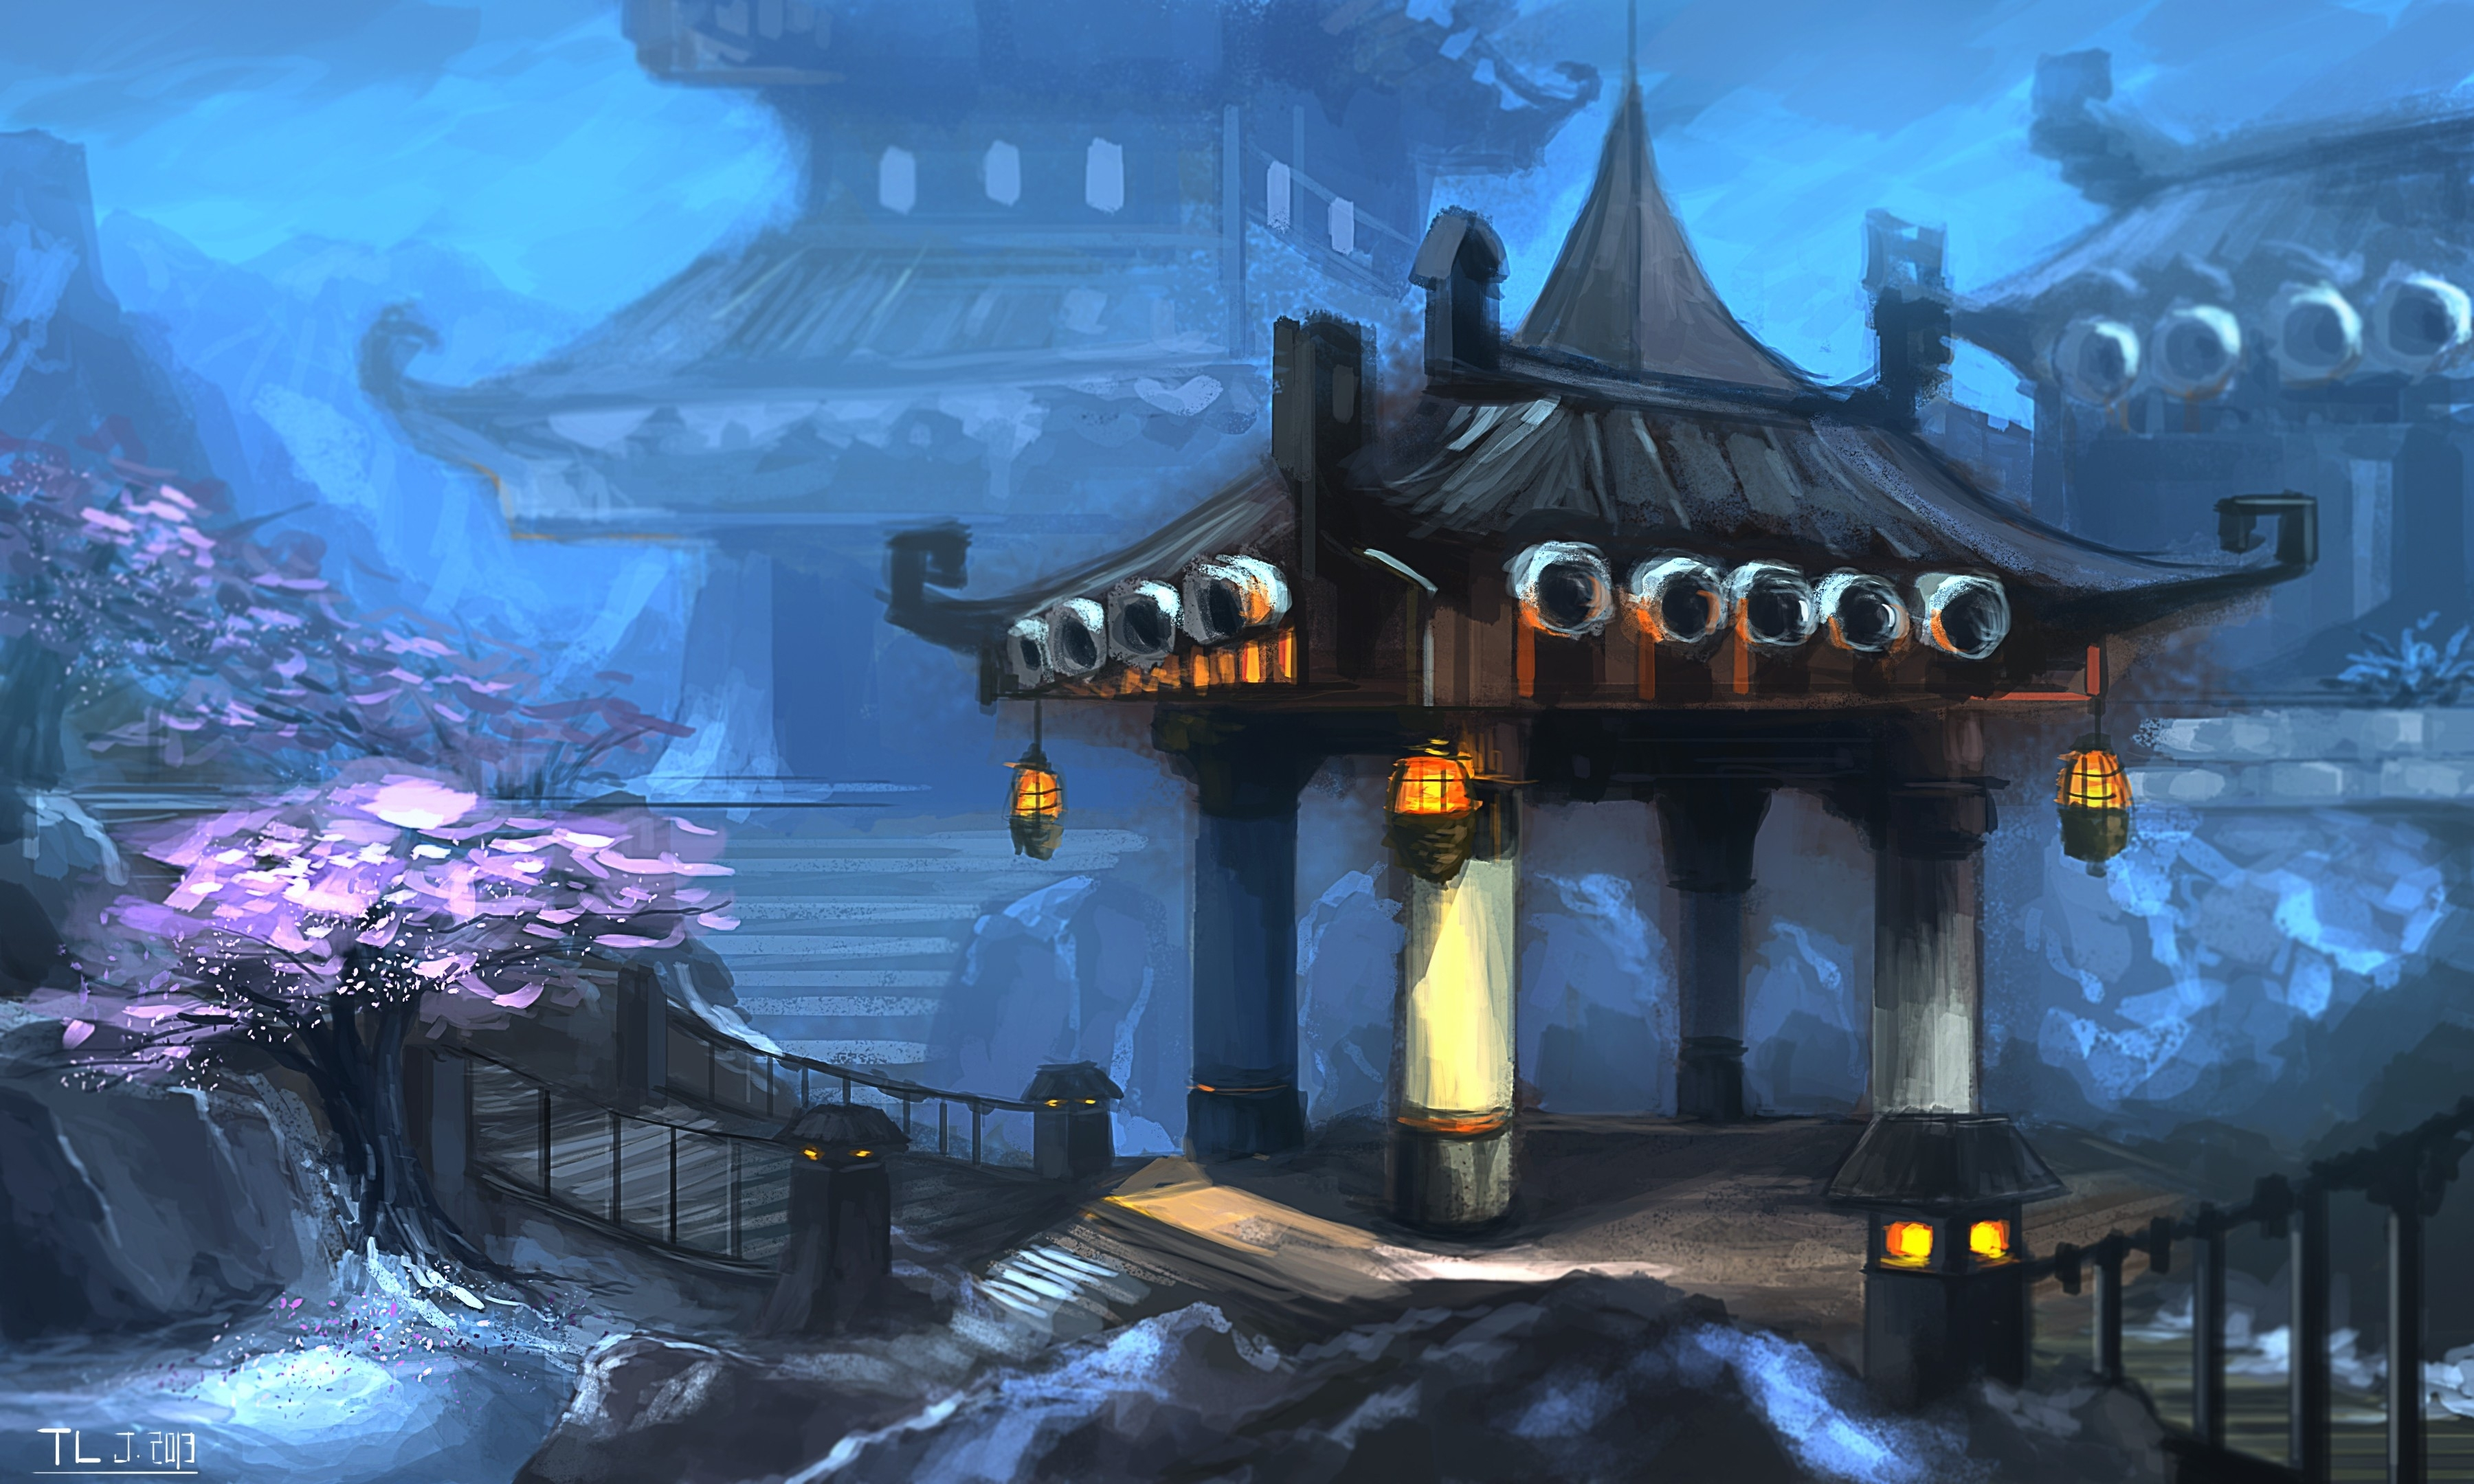 Download Wallpapers Download 3600x2160 landscapes world of warcraft 3600x2160